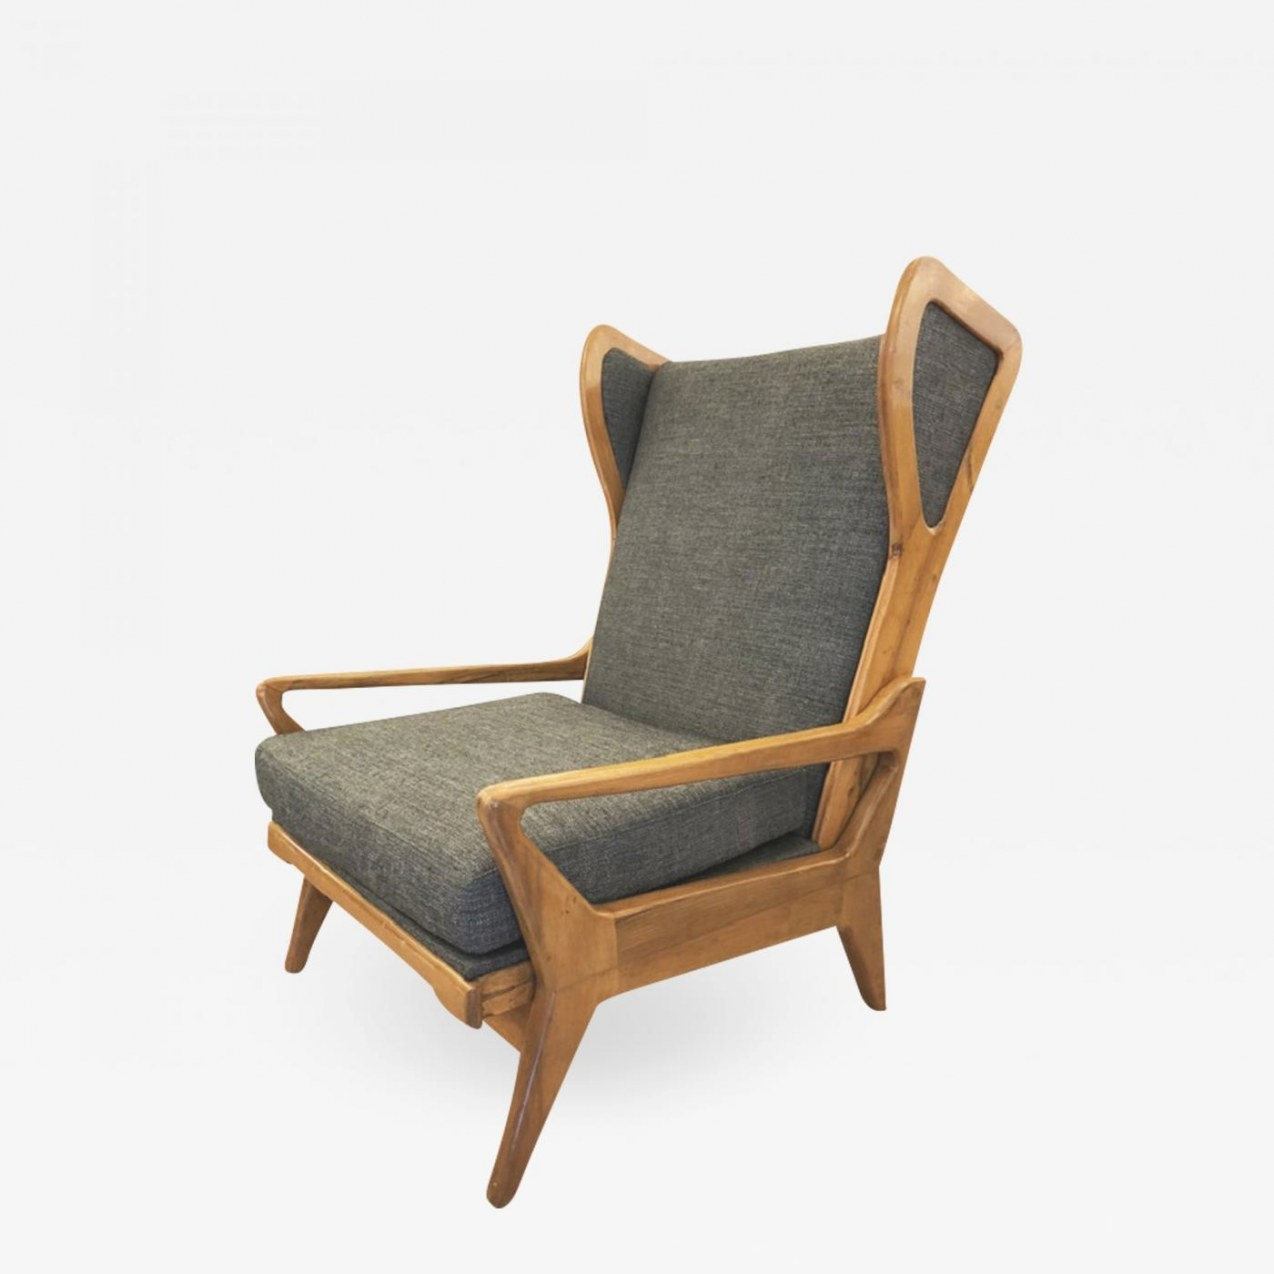 Large Mid-Century Lounge Chair With Walnut Frame throughout Mid Century Lounge Chair